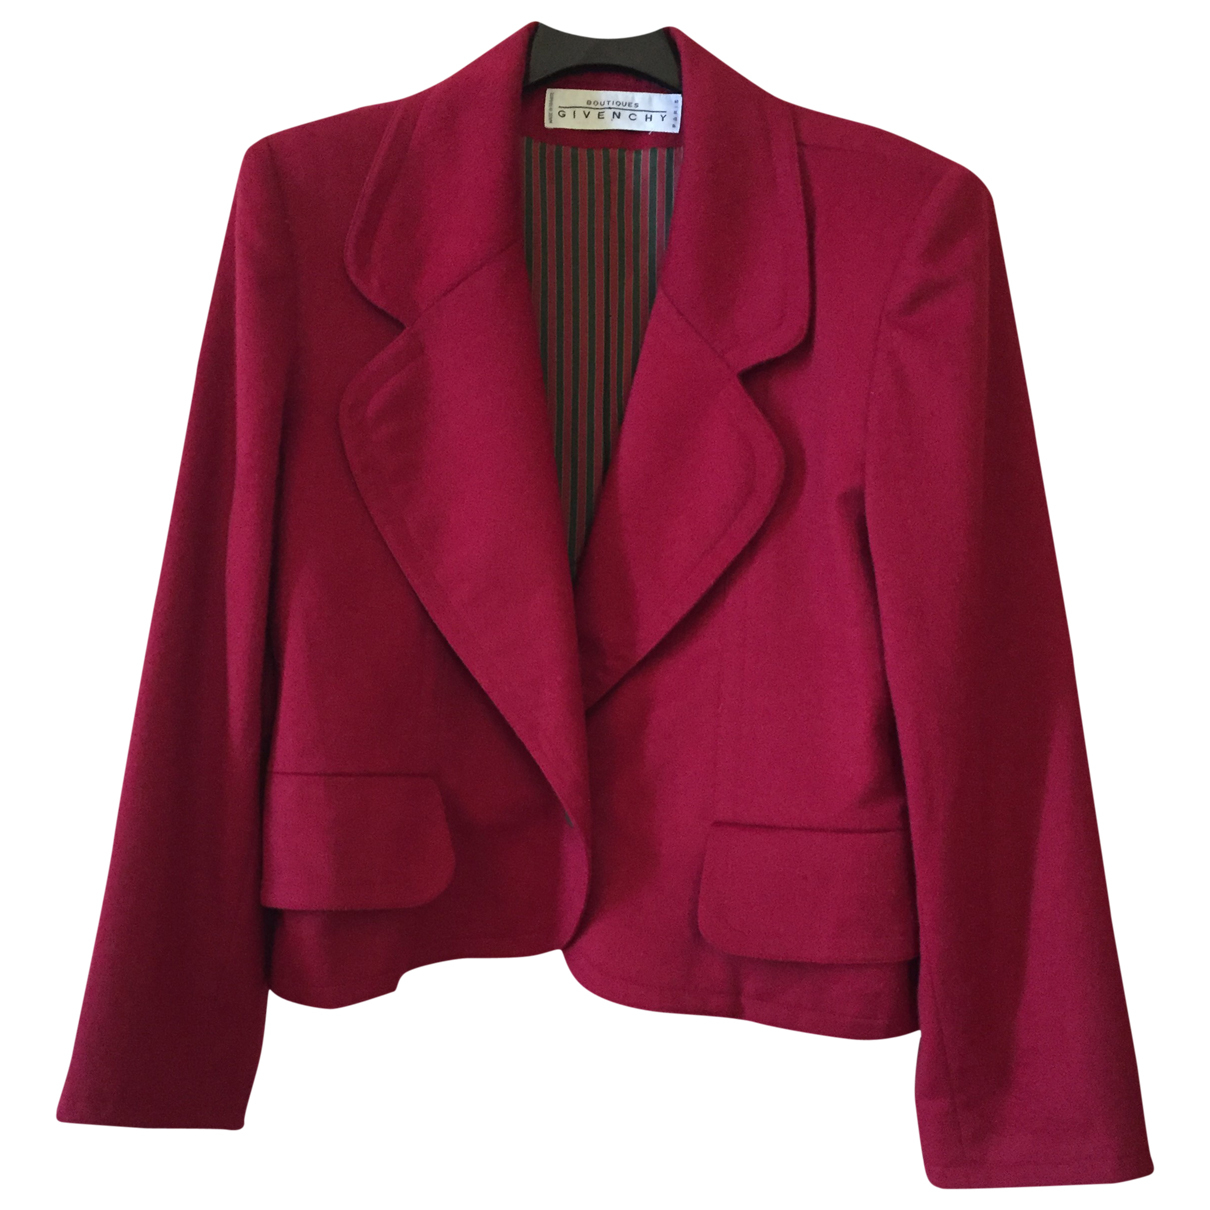 Givenchy \N Jacke in  Rot Wolle